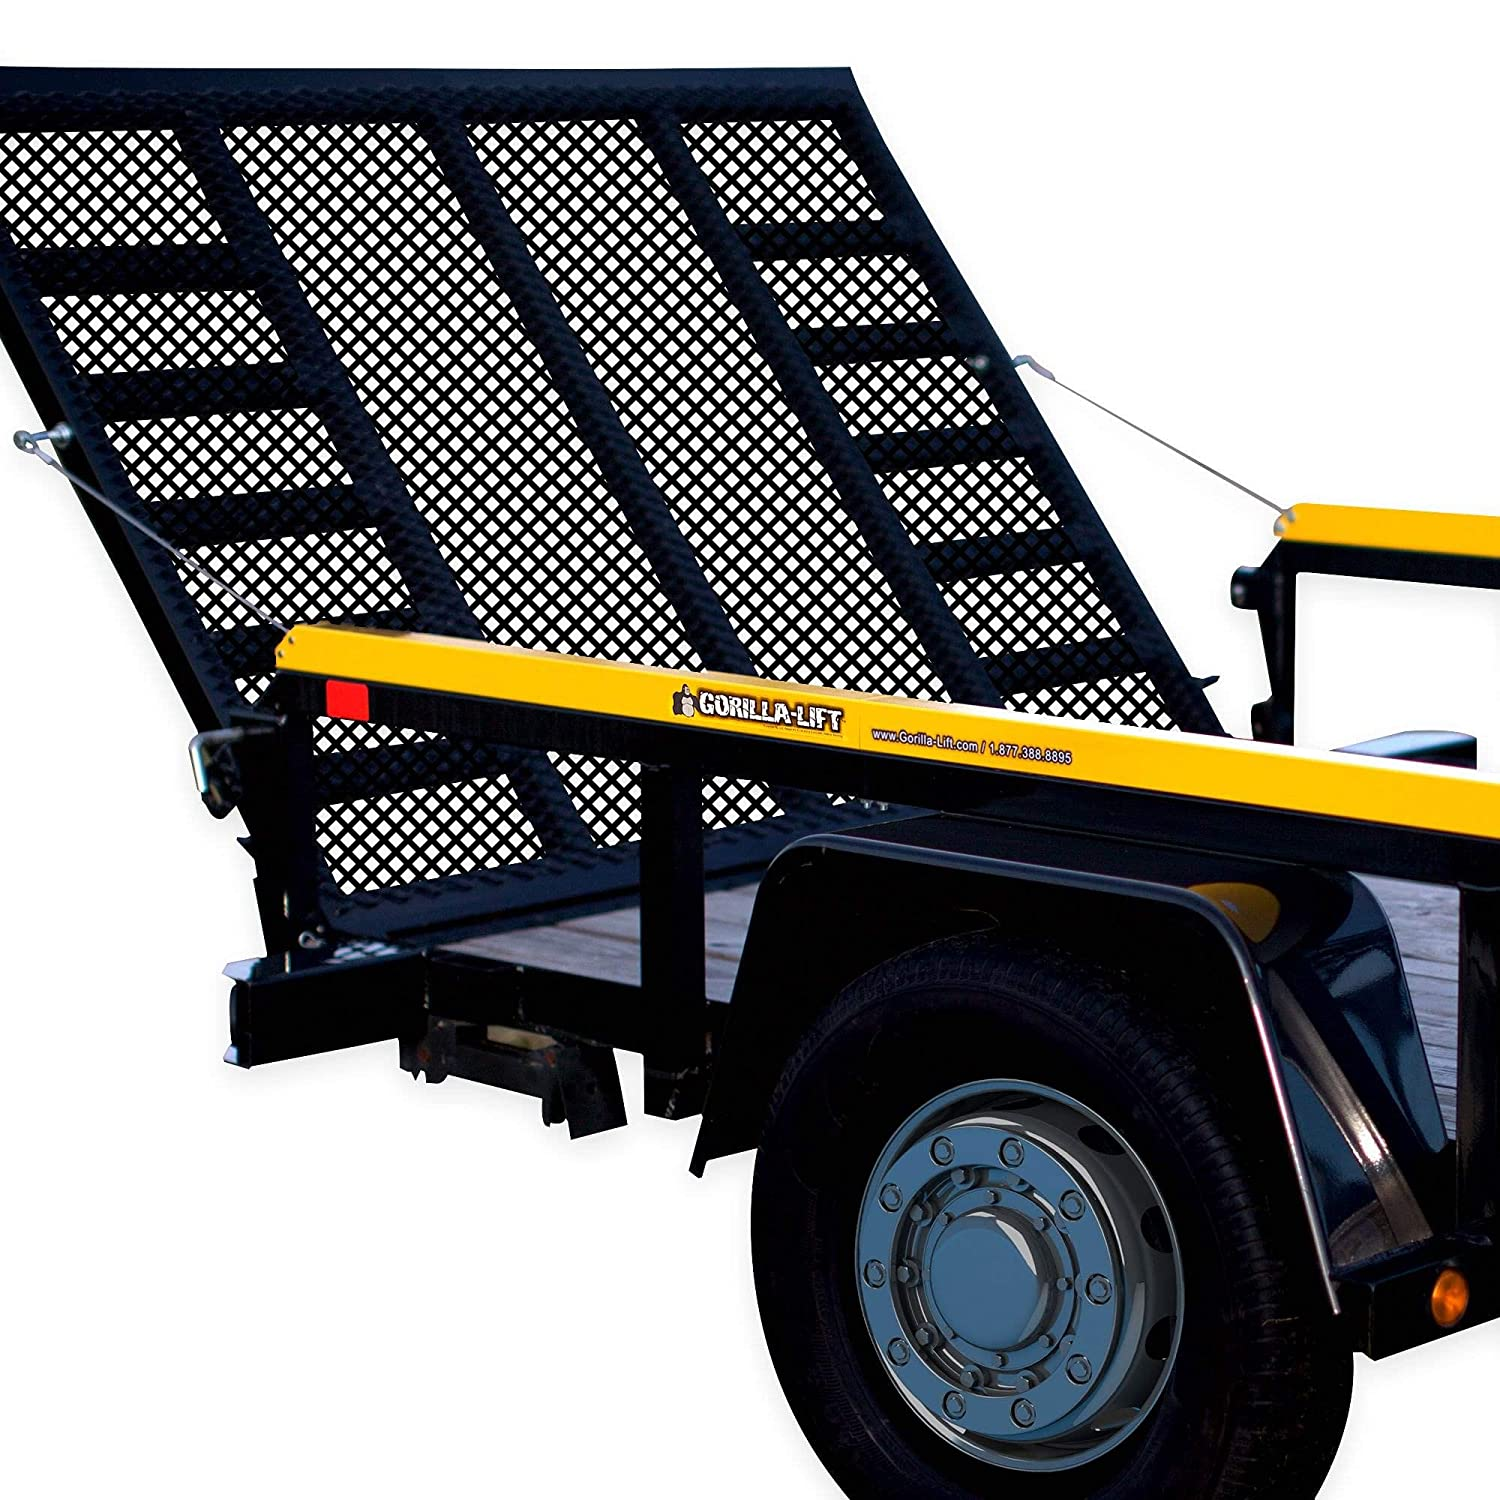 Official GORILLA-LIFT 2-Sided Tailgate Trailer Utility Max 68% OFF Gate R SEAL limited product